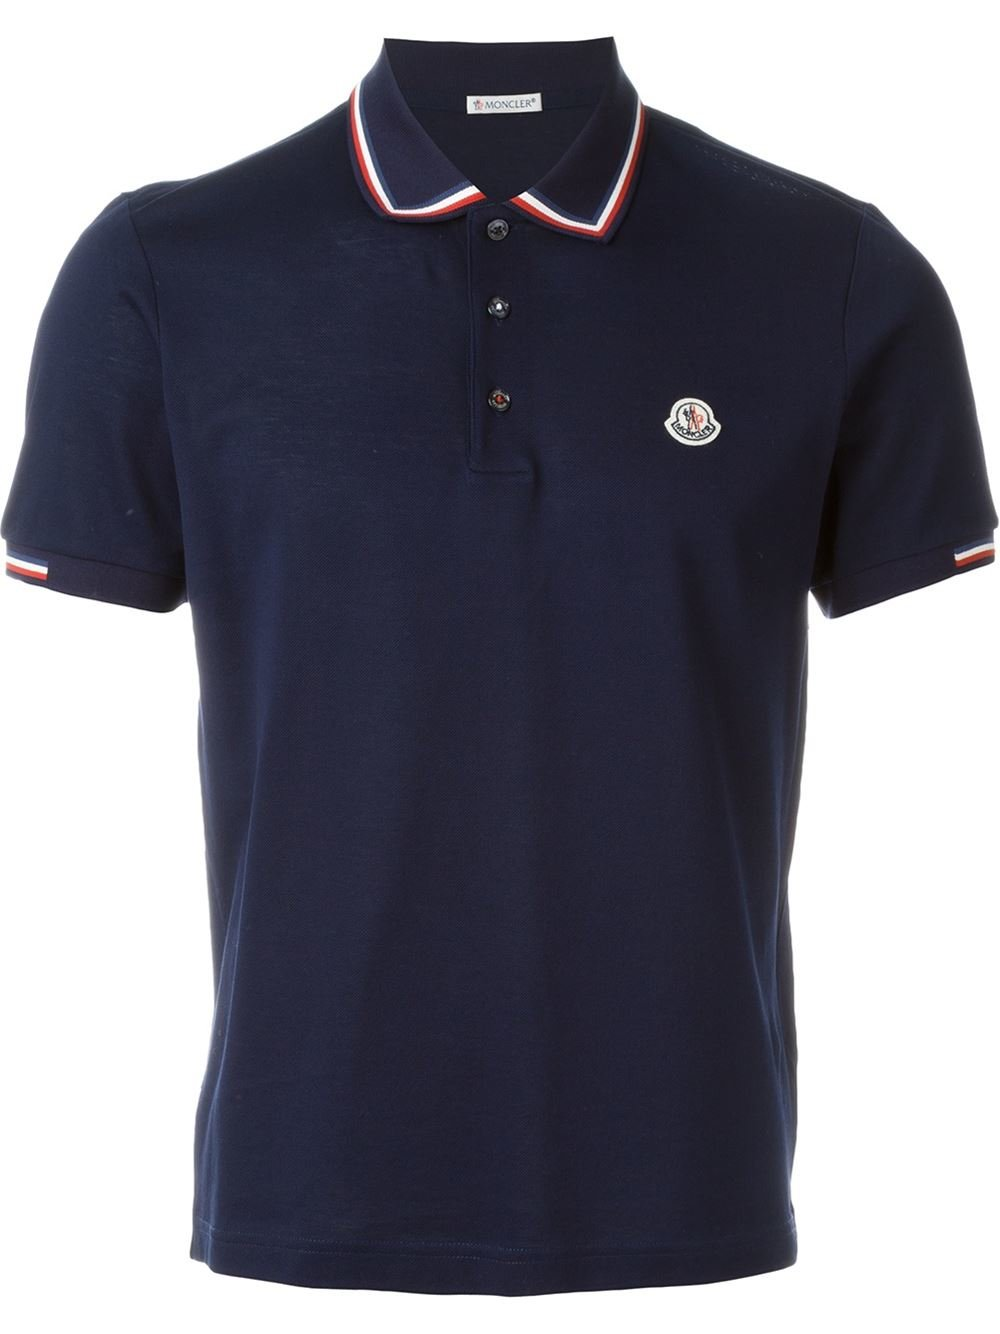 moncler logo polo shirt in blue for men lyst. Black Bedroom Furniture Sets. Home Design Ideas